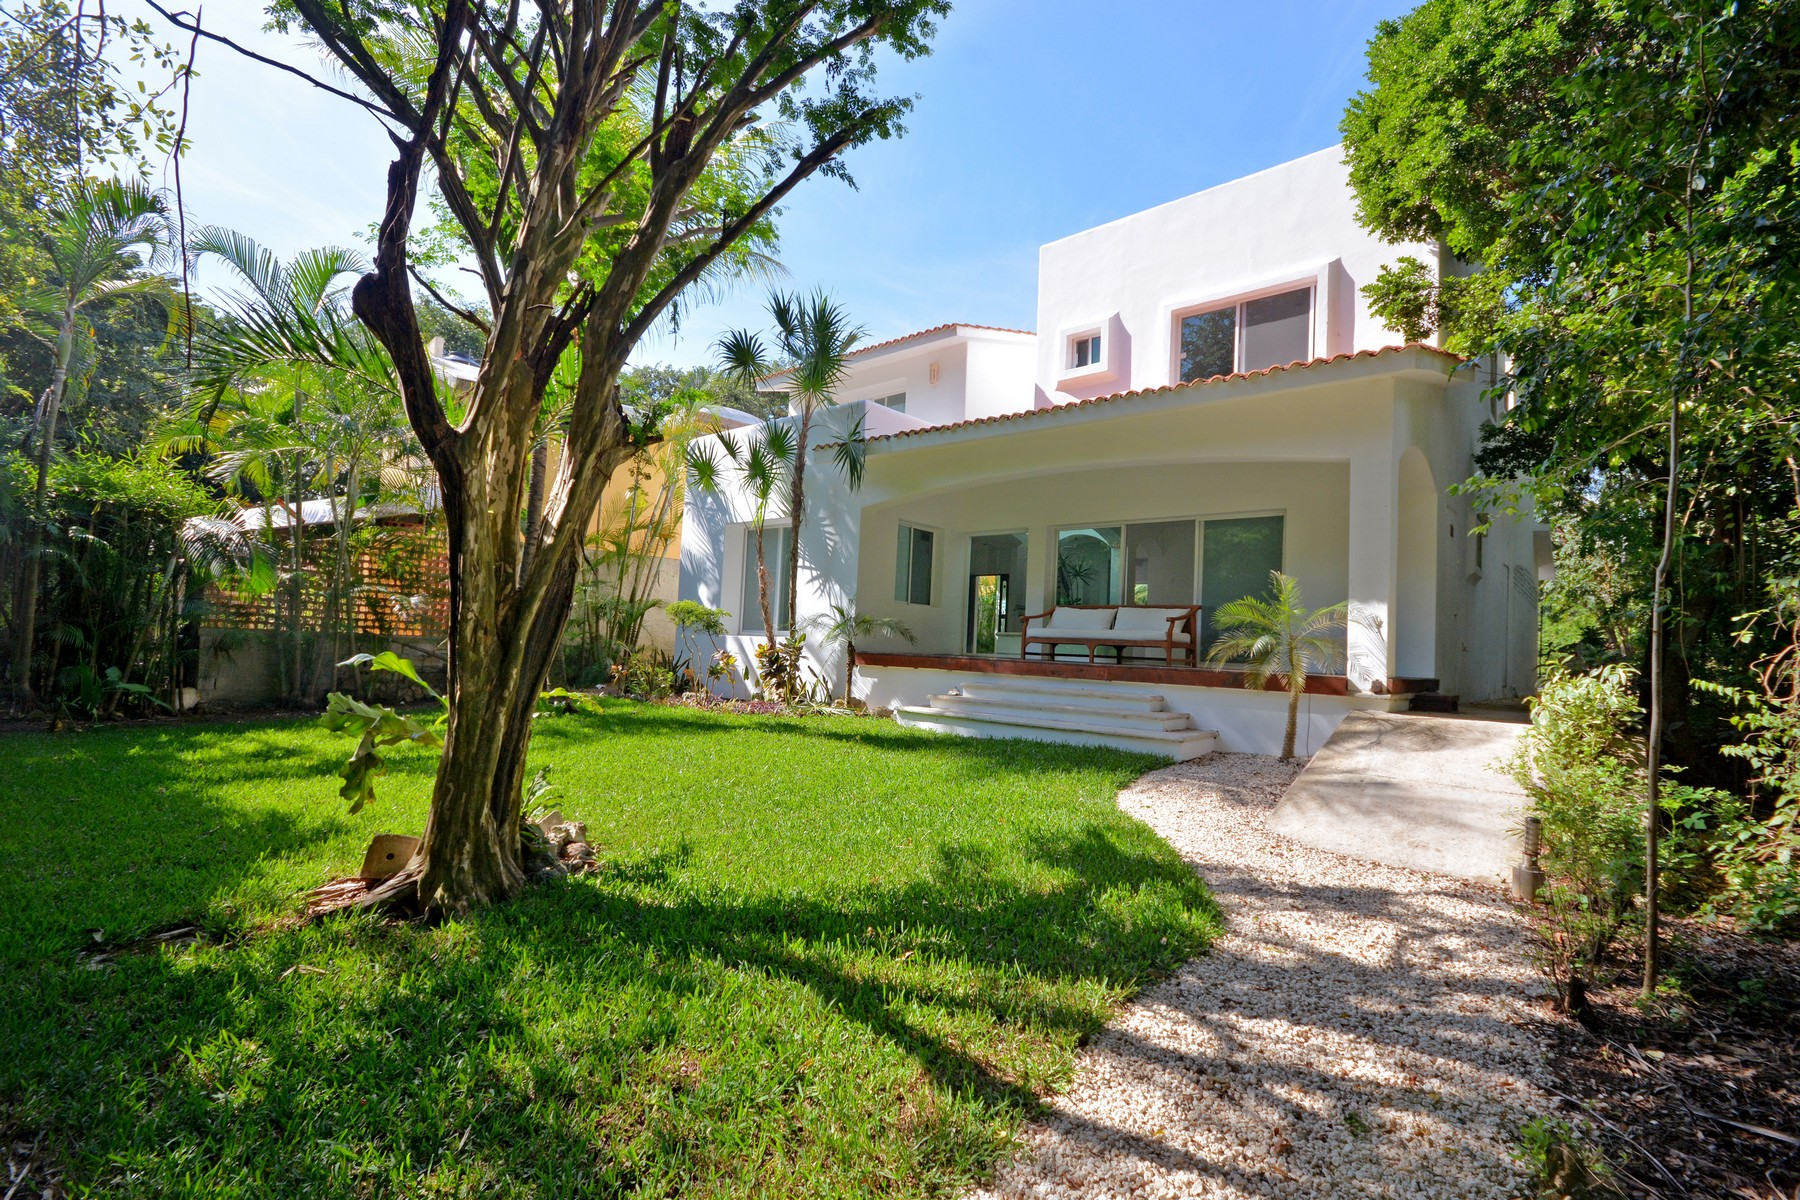 Single Family Home for Sale at CASA MONIQUE Club Real, Playacar Fase II Lote 259 Playa Del Carmen, Quintana Roo, 77710 Mexico